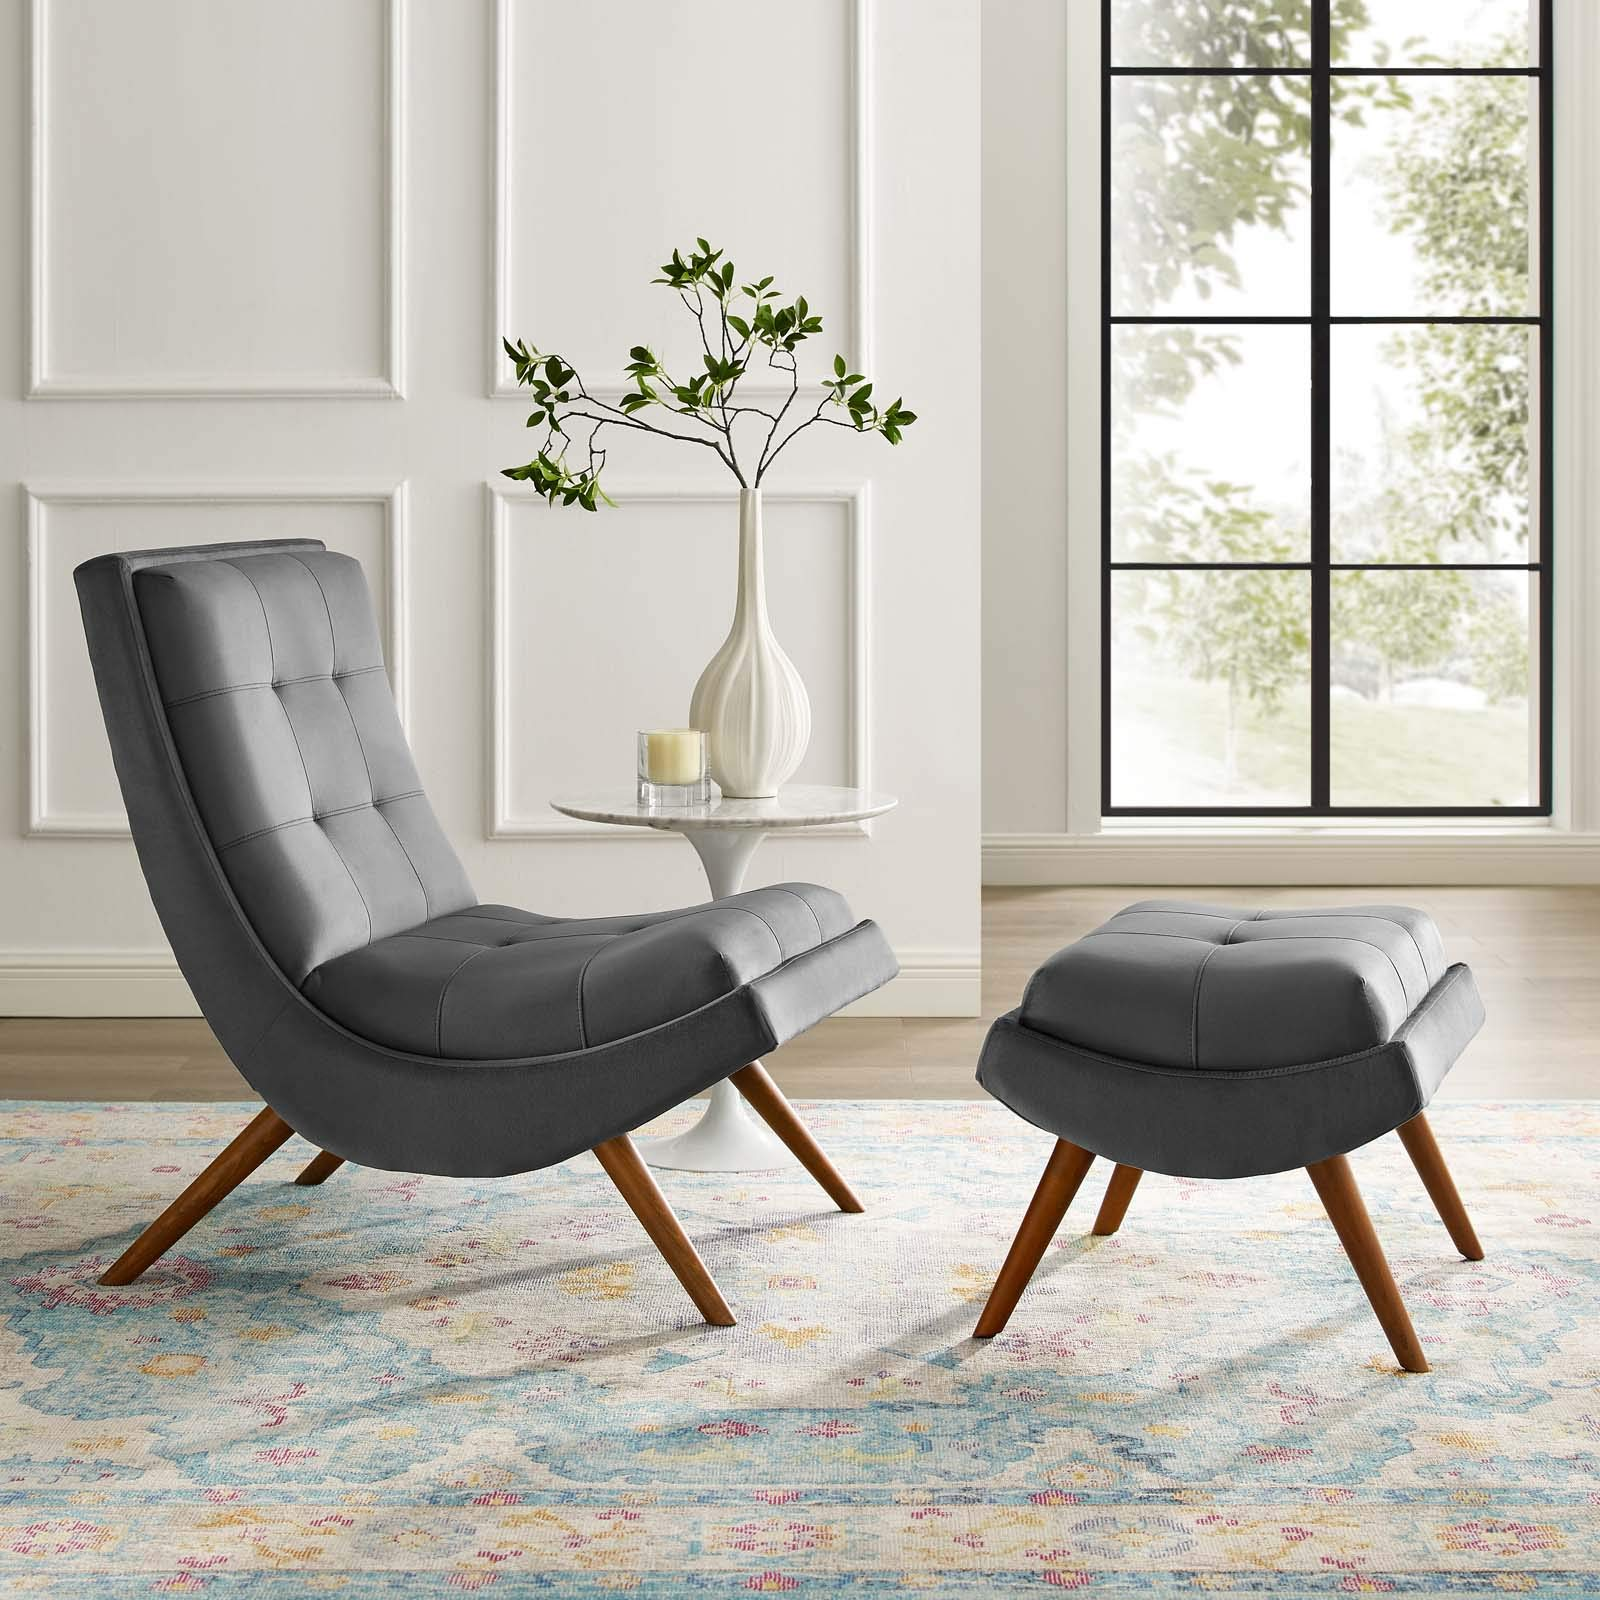 Modway Ramp Biscuit Tufted Performance Velvet Living Room Lounge Chair and Ottoman Set in Gray by Modway